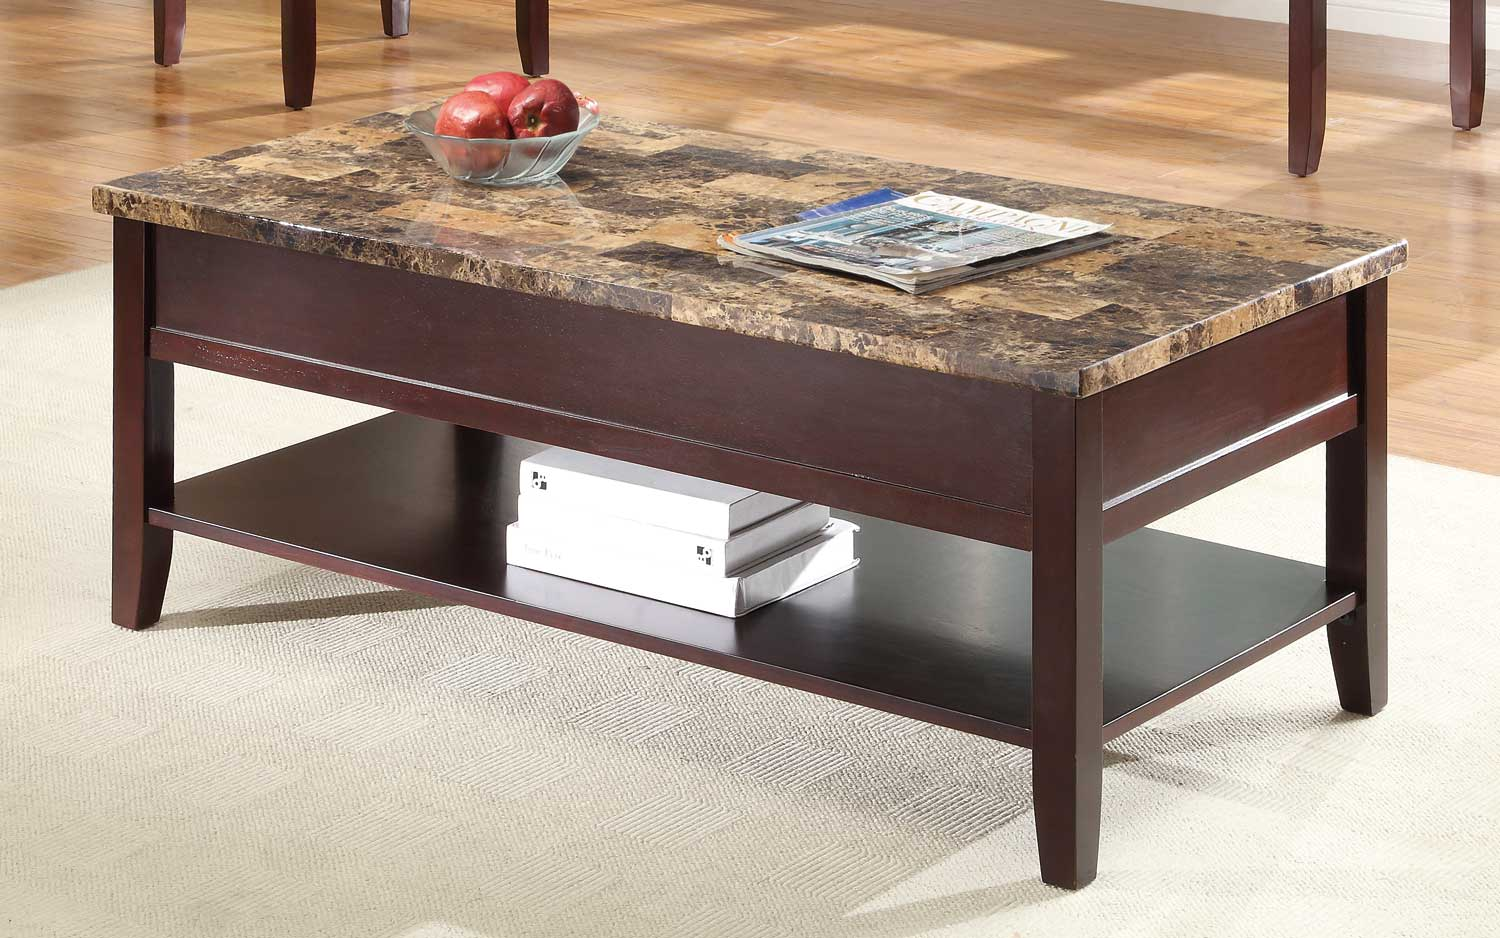 Homelegance Orton Lift Top Cocktail Table - Cherry